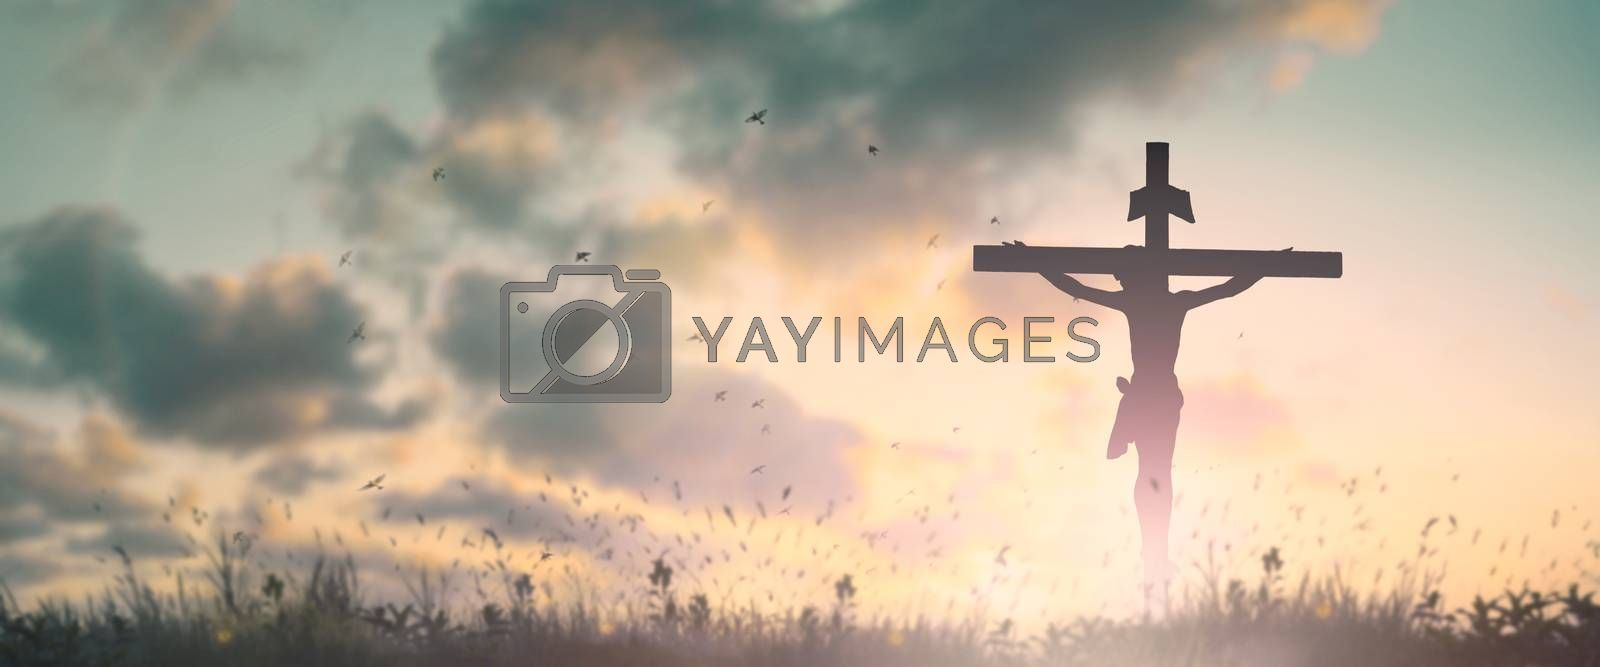 Silhouette jesus christ crucifix on cross on calvary sunset background concept for good friday he is risen in easter day, good friday jesus death on crucifix, world christian and holy spirit religious.